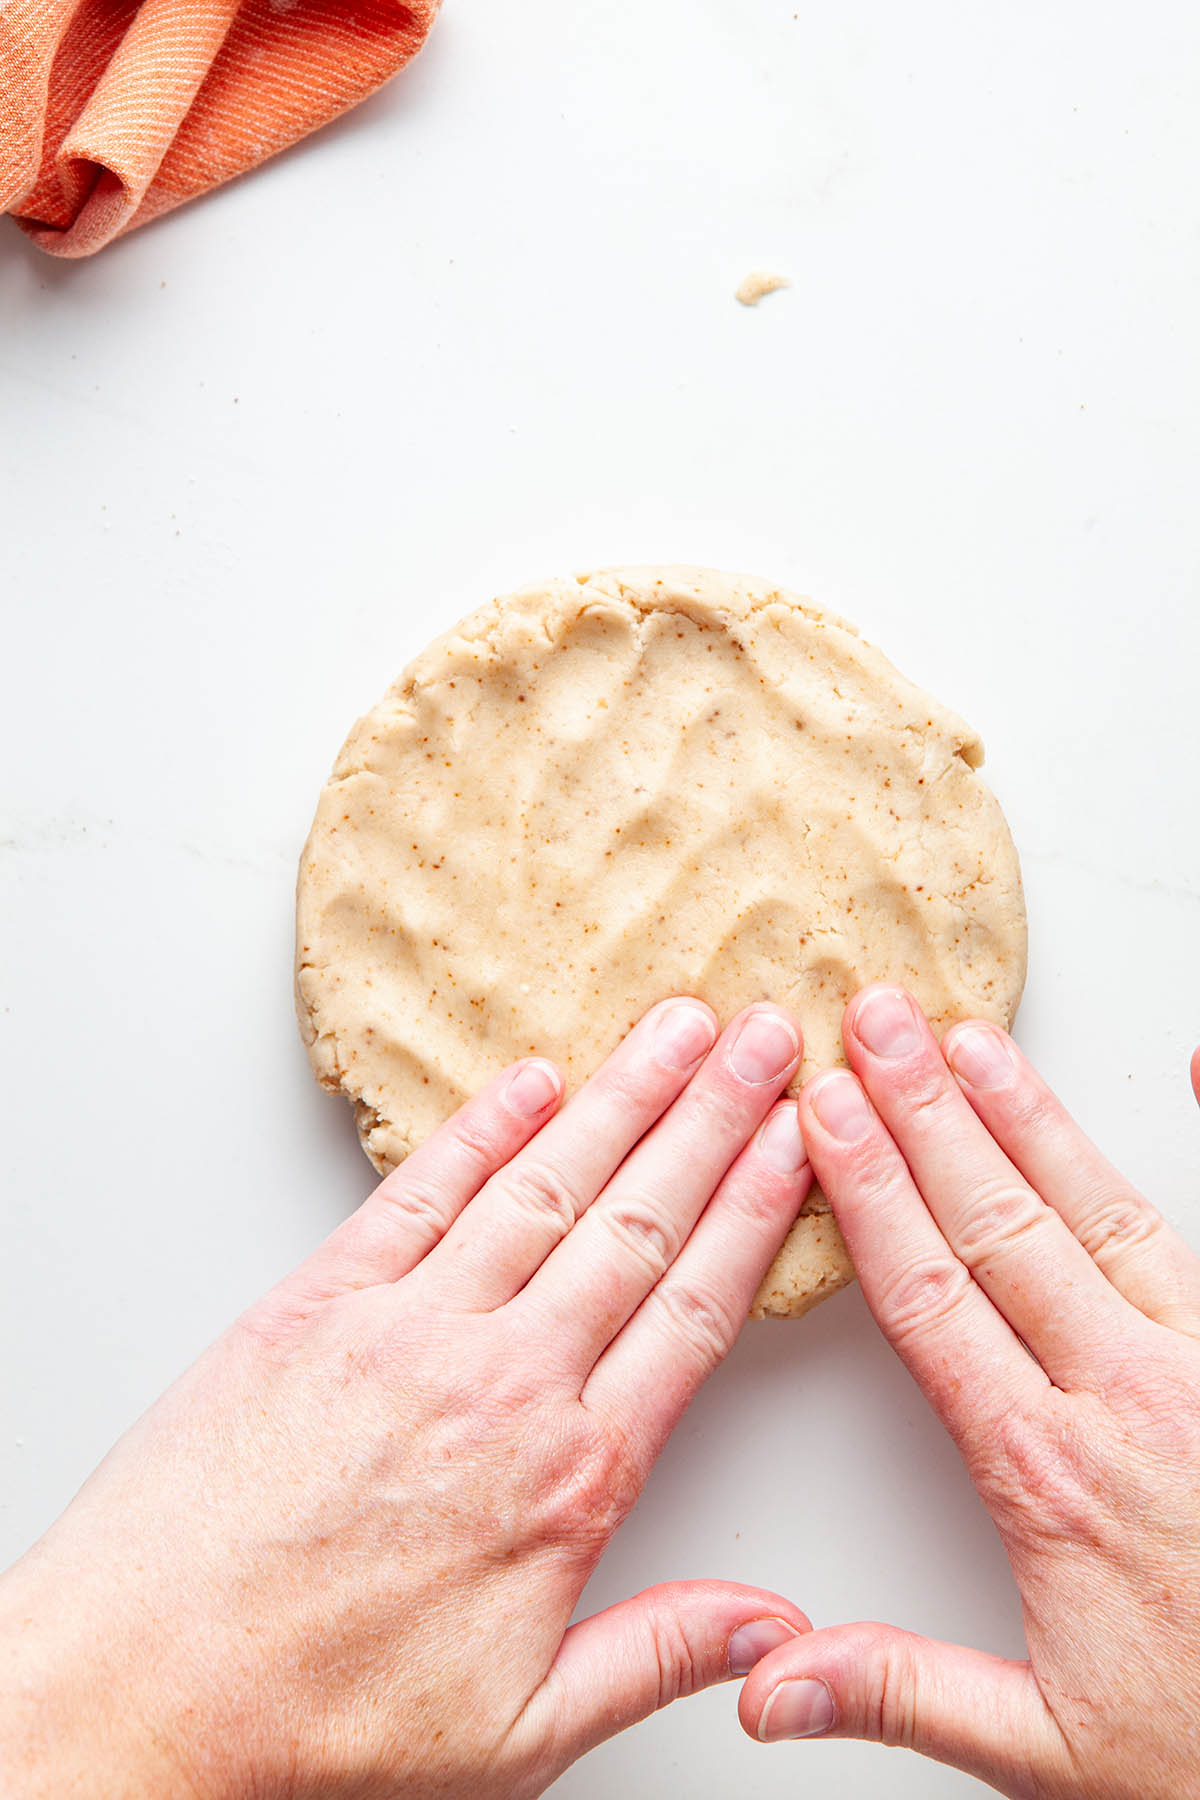 Woman's hands patting pie dough into a disc.